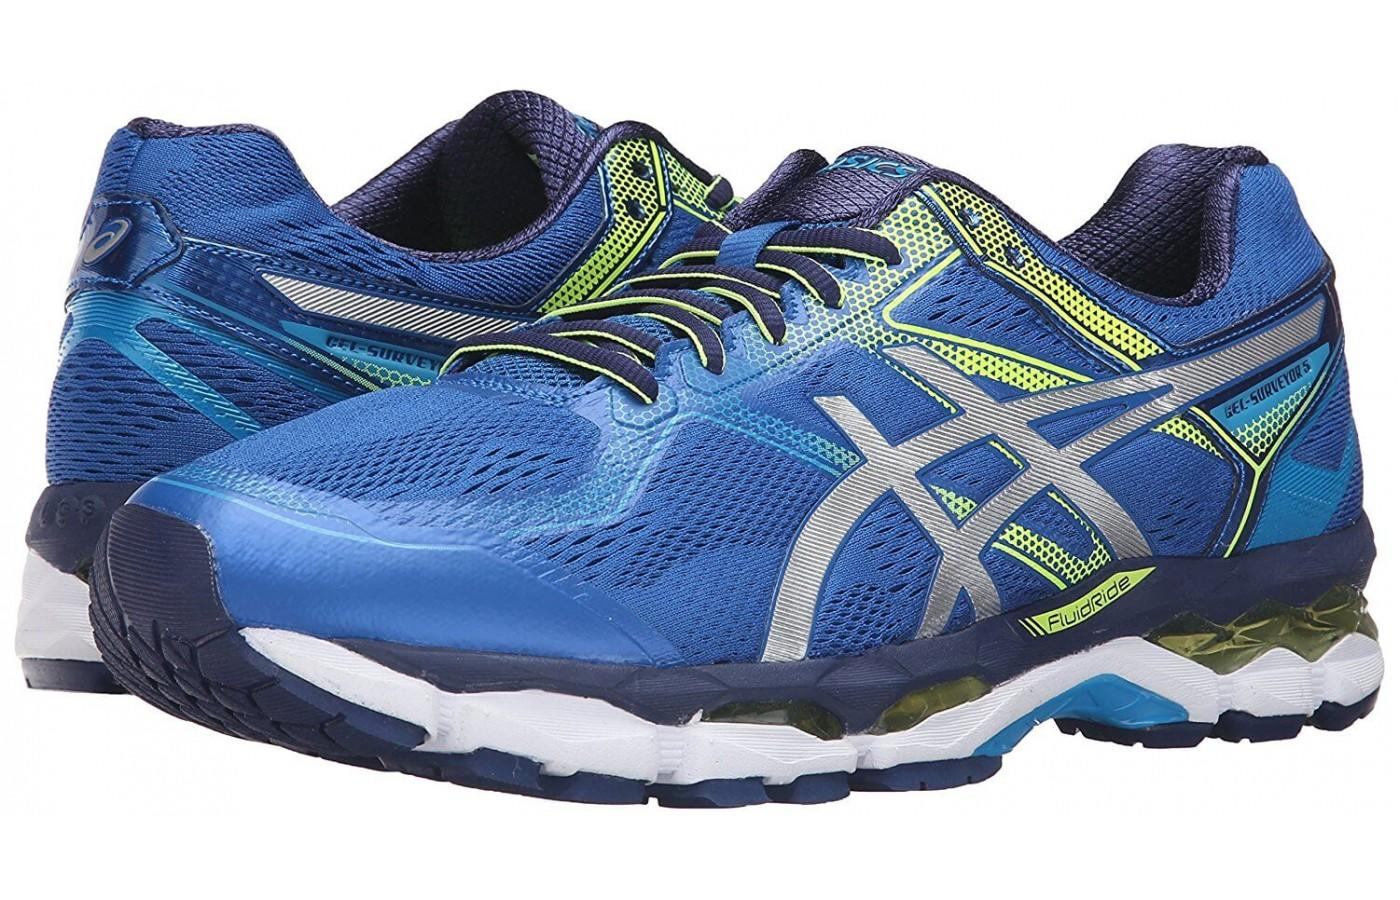 The ASICS GEL-Surveyor 5, one of the brand's most reliable running shoes for serious trainers.